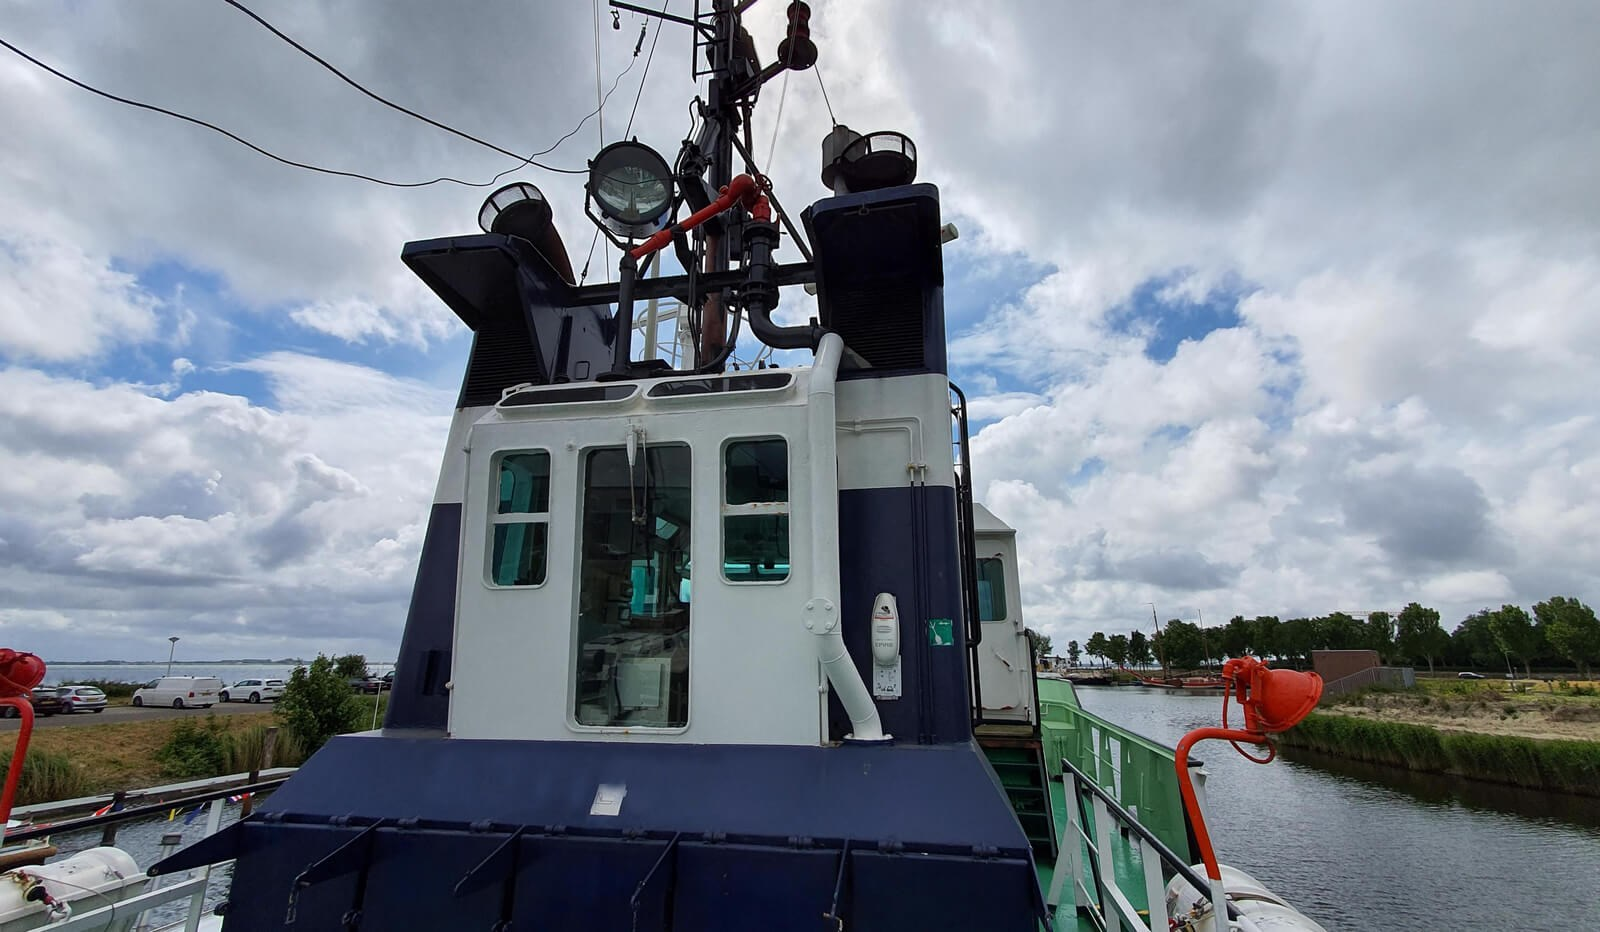 used voith tugboat for sale 07598 (23)